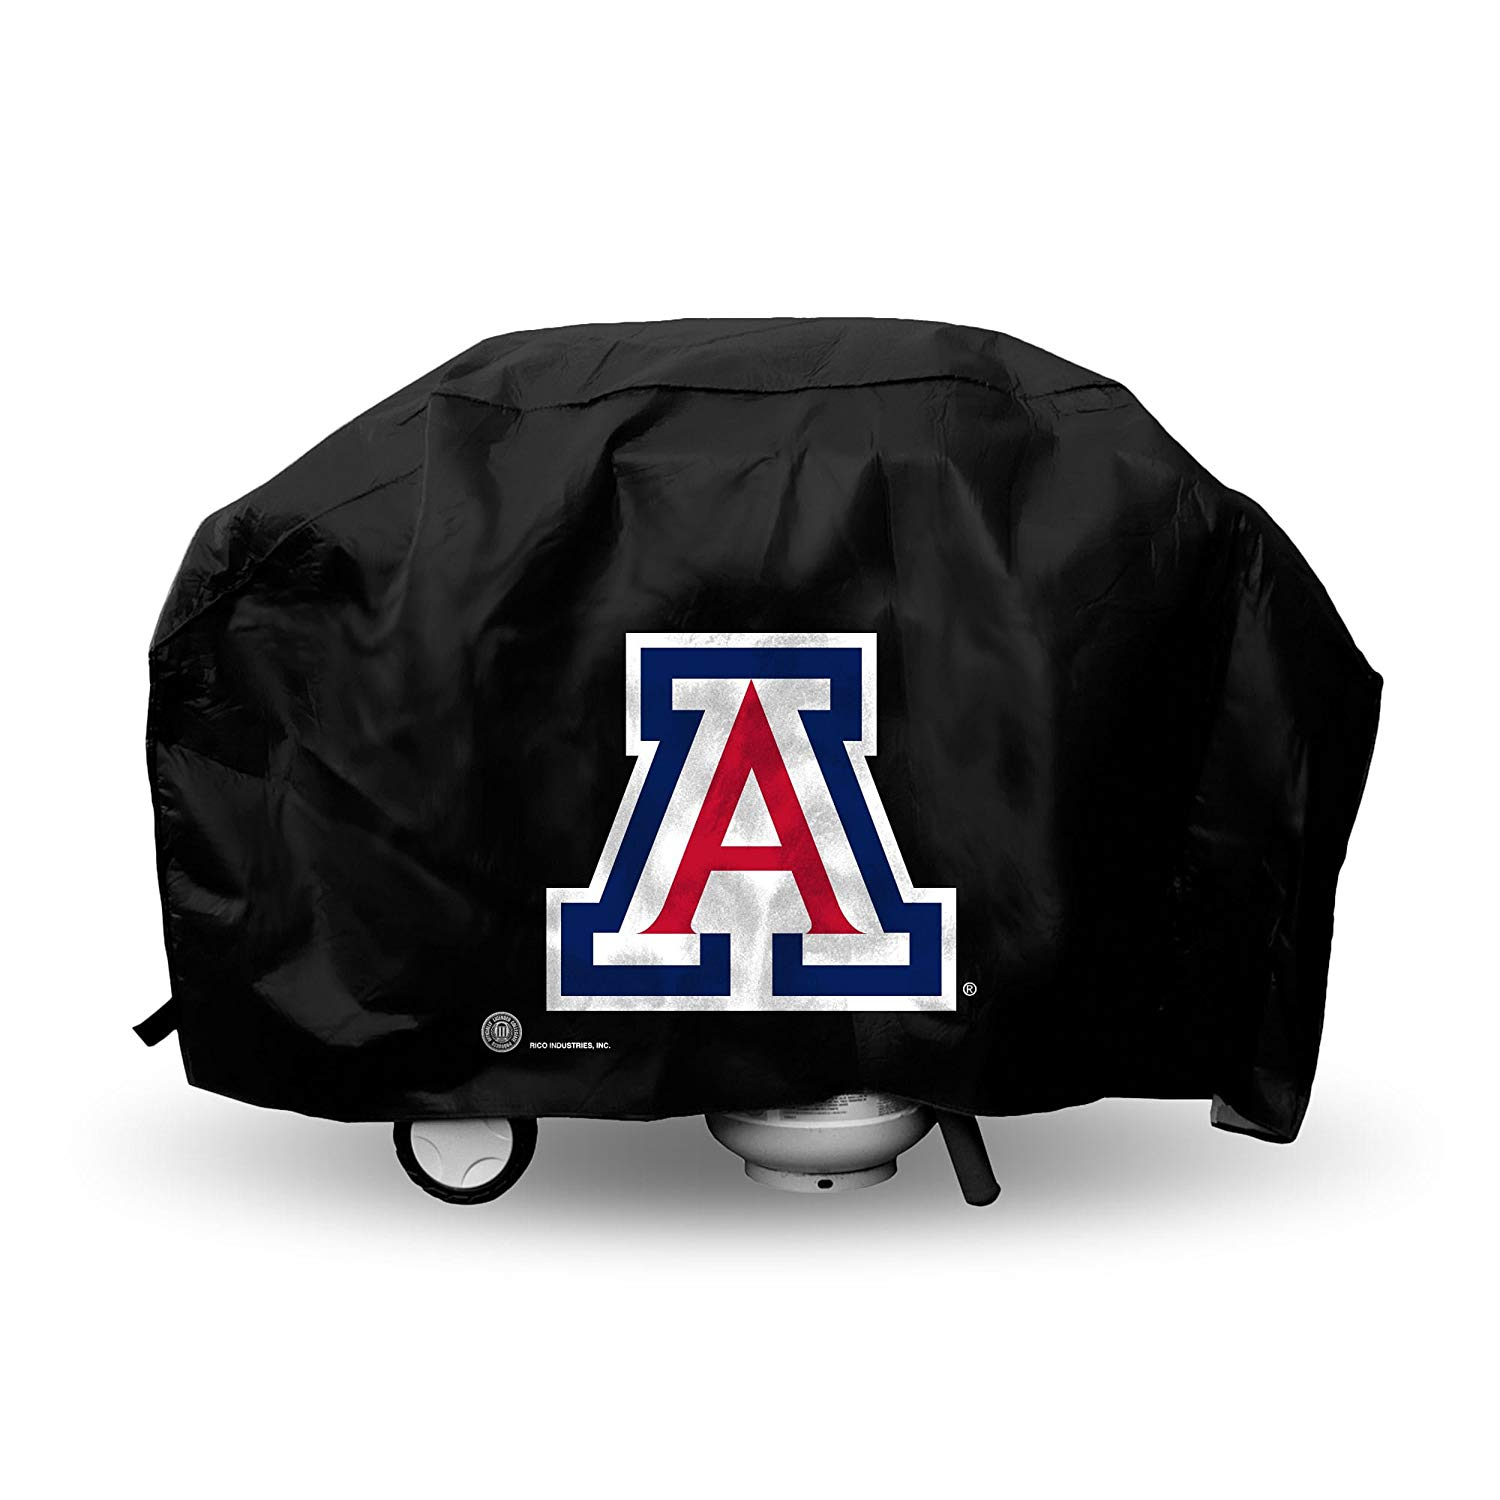 N&T 1 Piece Wildcats Outdoor Camping Grill Cover 68 Inch, Football Themed Bbq Cover Large Durable Patio Barbecue Cover Team Logo Fan Merchandise Athletic Fan Black, Hook loop Closure Vinyl